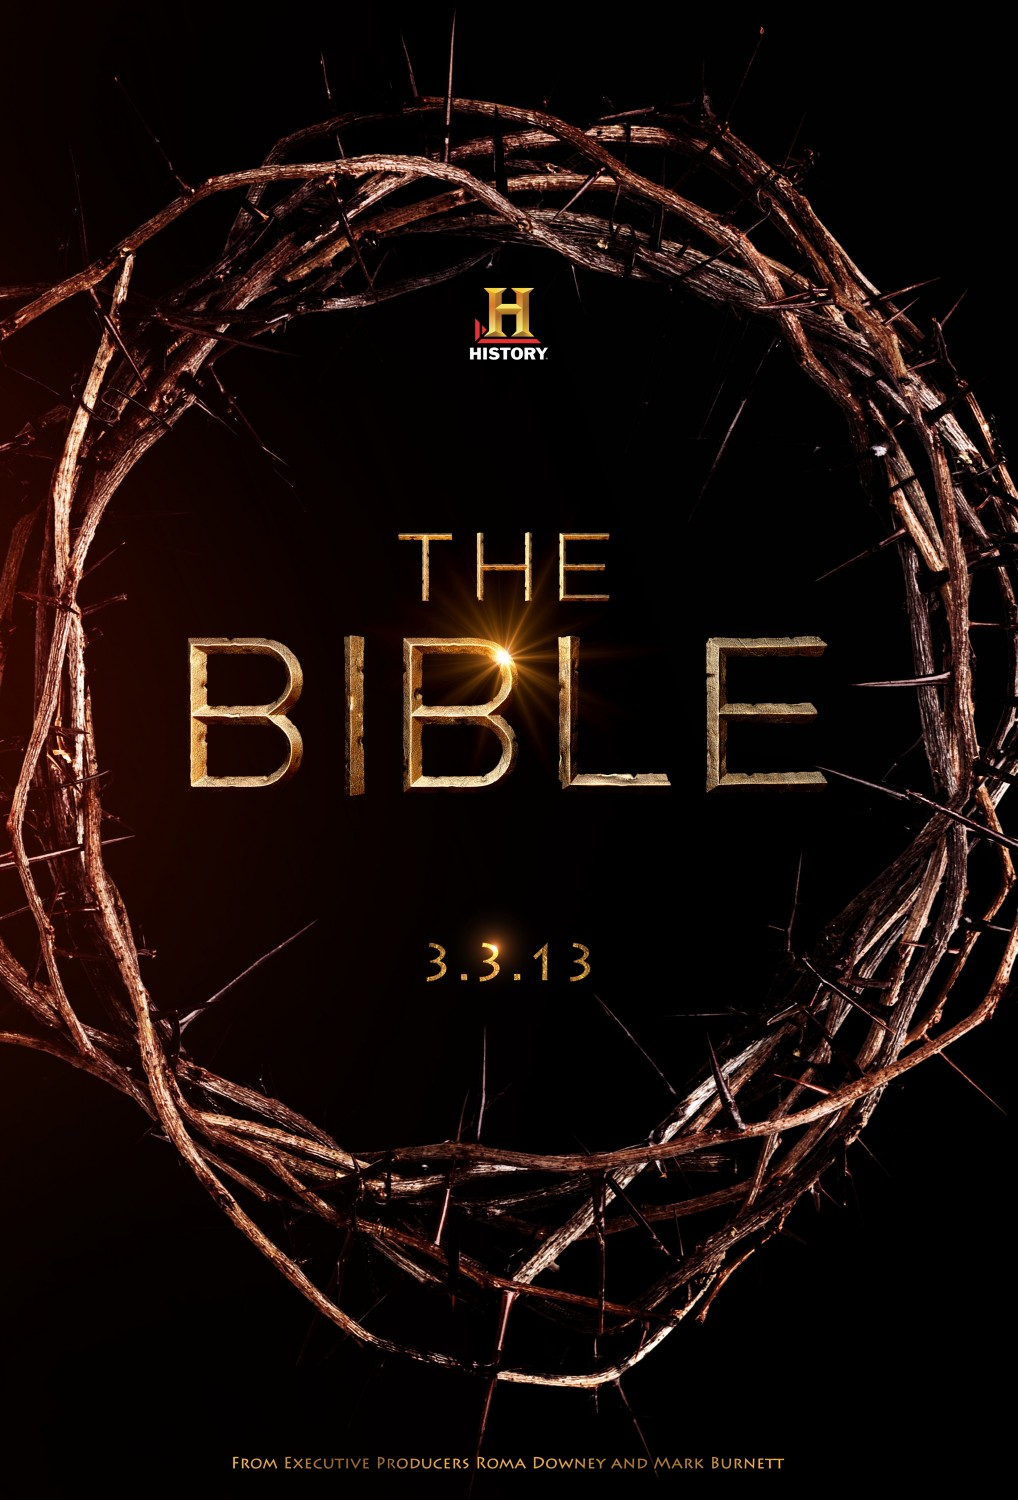 THE BIBLE (MINI-SERIES) - Music by Hans Zimmer and Lorne BalfeMusic Editing by Jessica Weiss